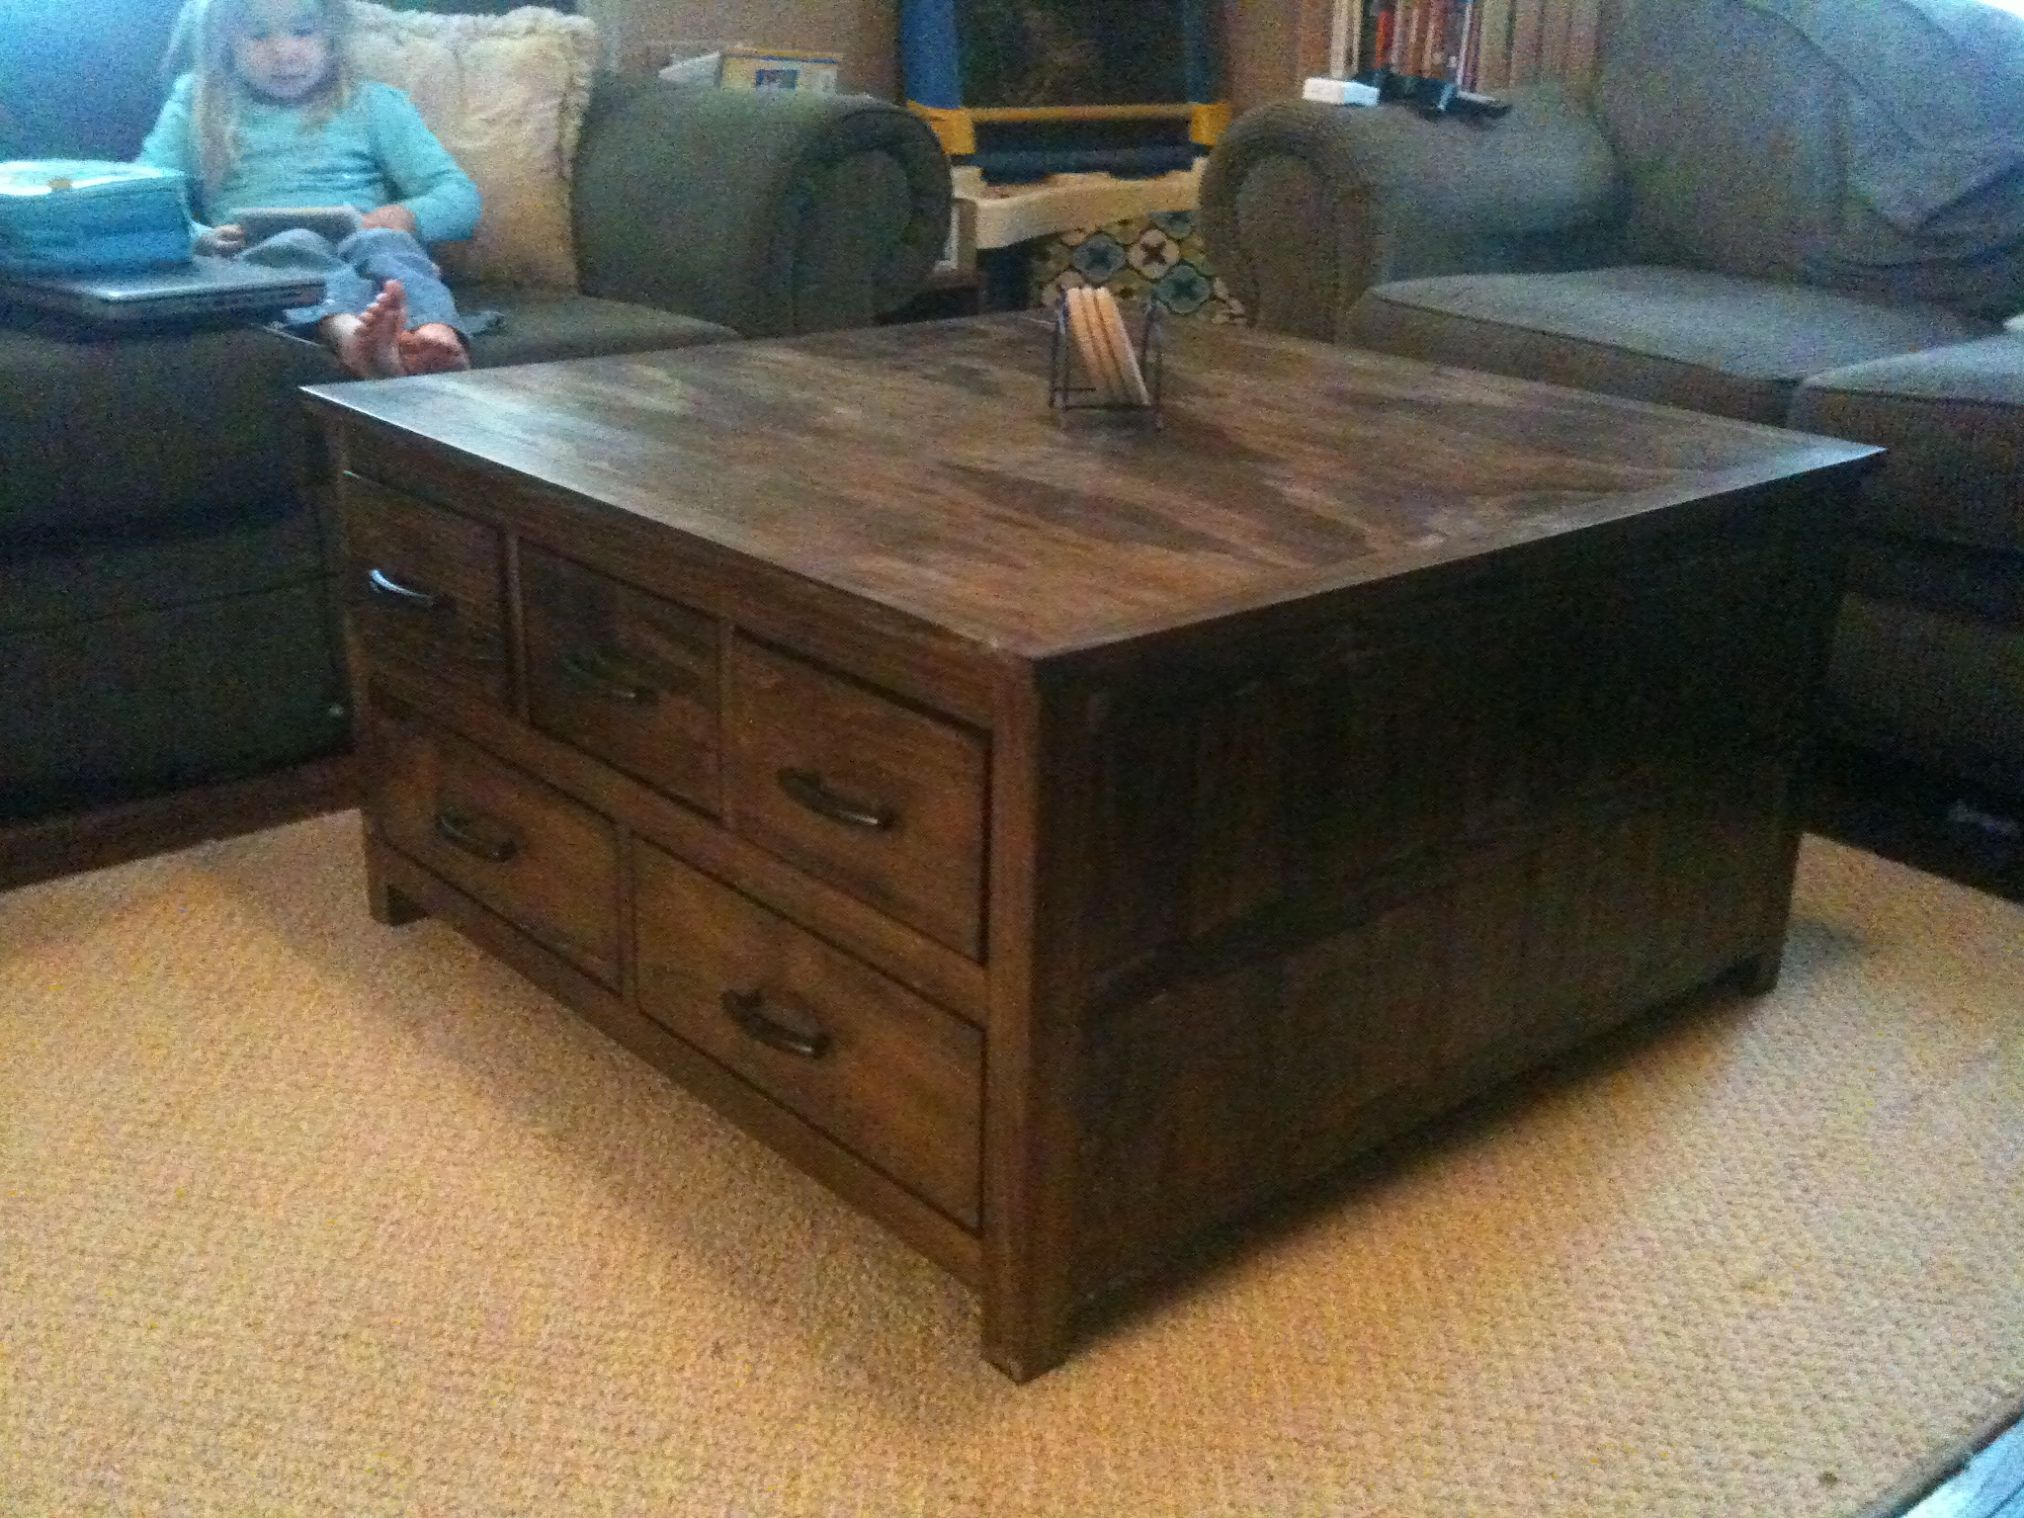 Square Storage Coffee Table Furniture Sets Living Room Check More At Http Www Buzzfolders